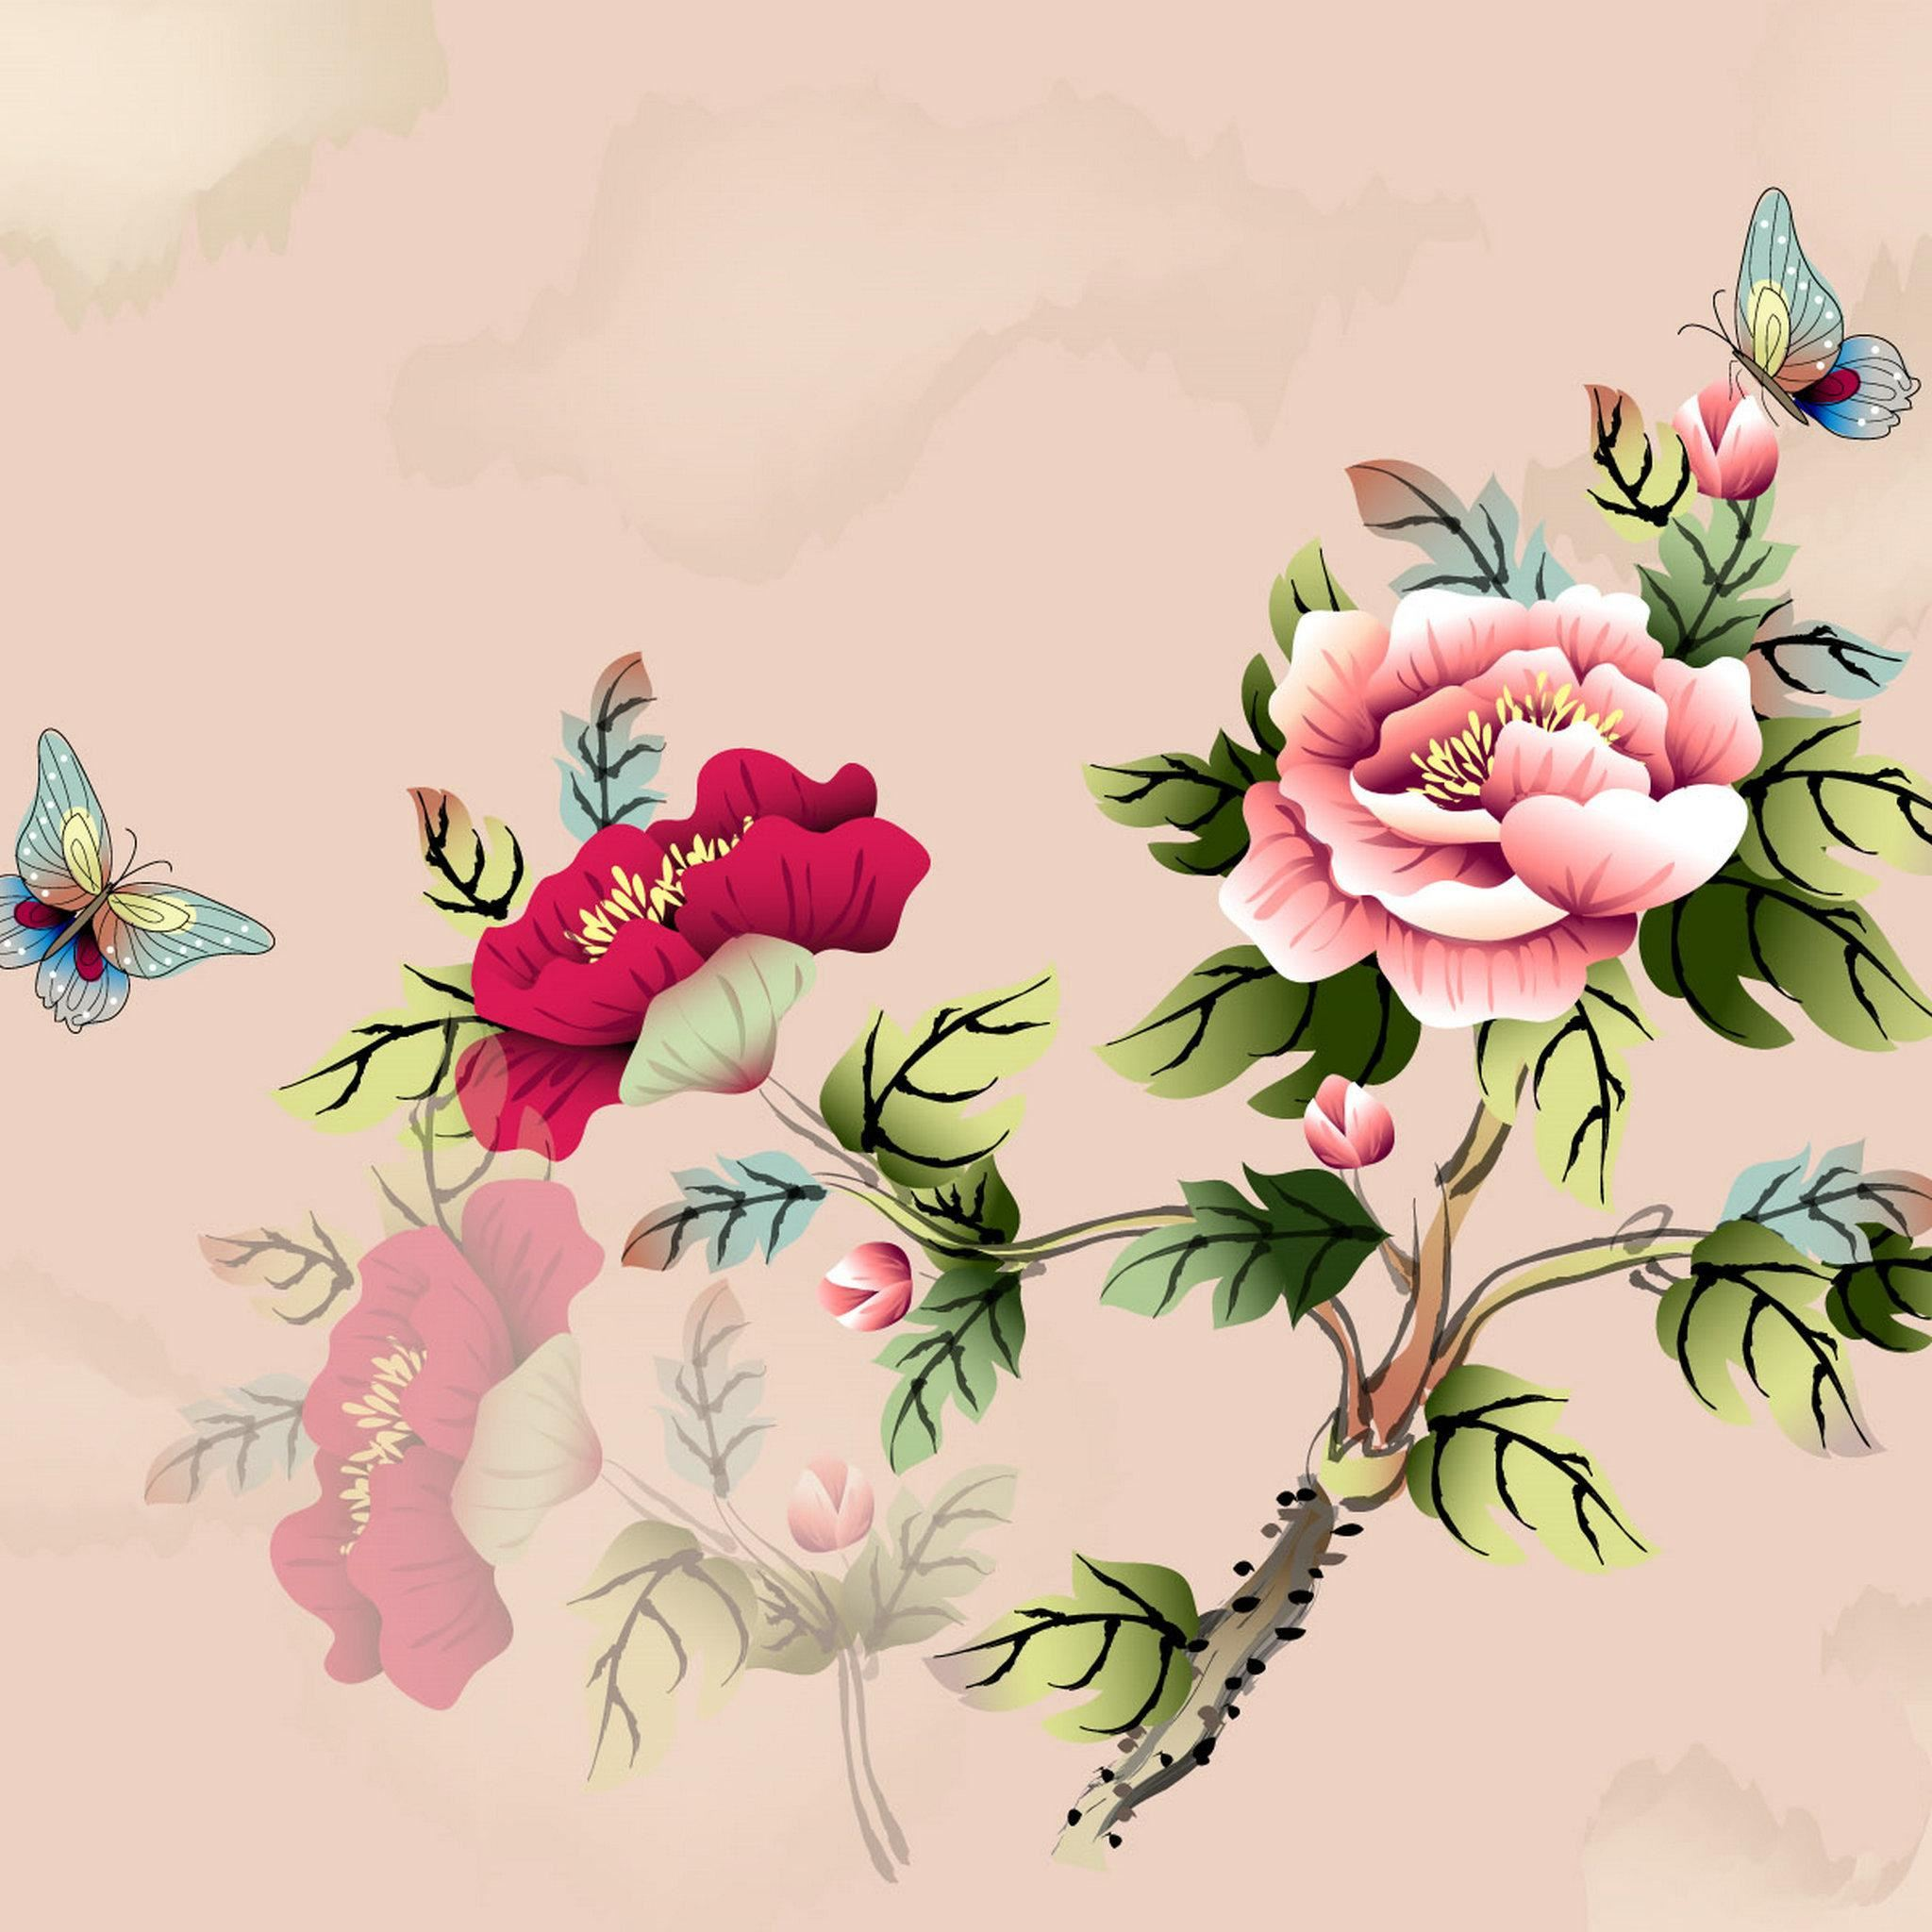 Vintage Floral Pattern Background Ipad Air Wallpapers Free Download